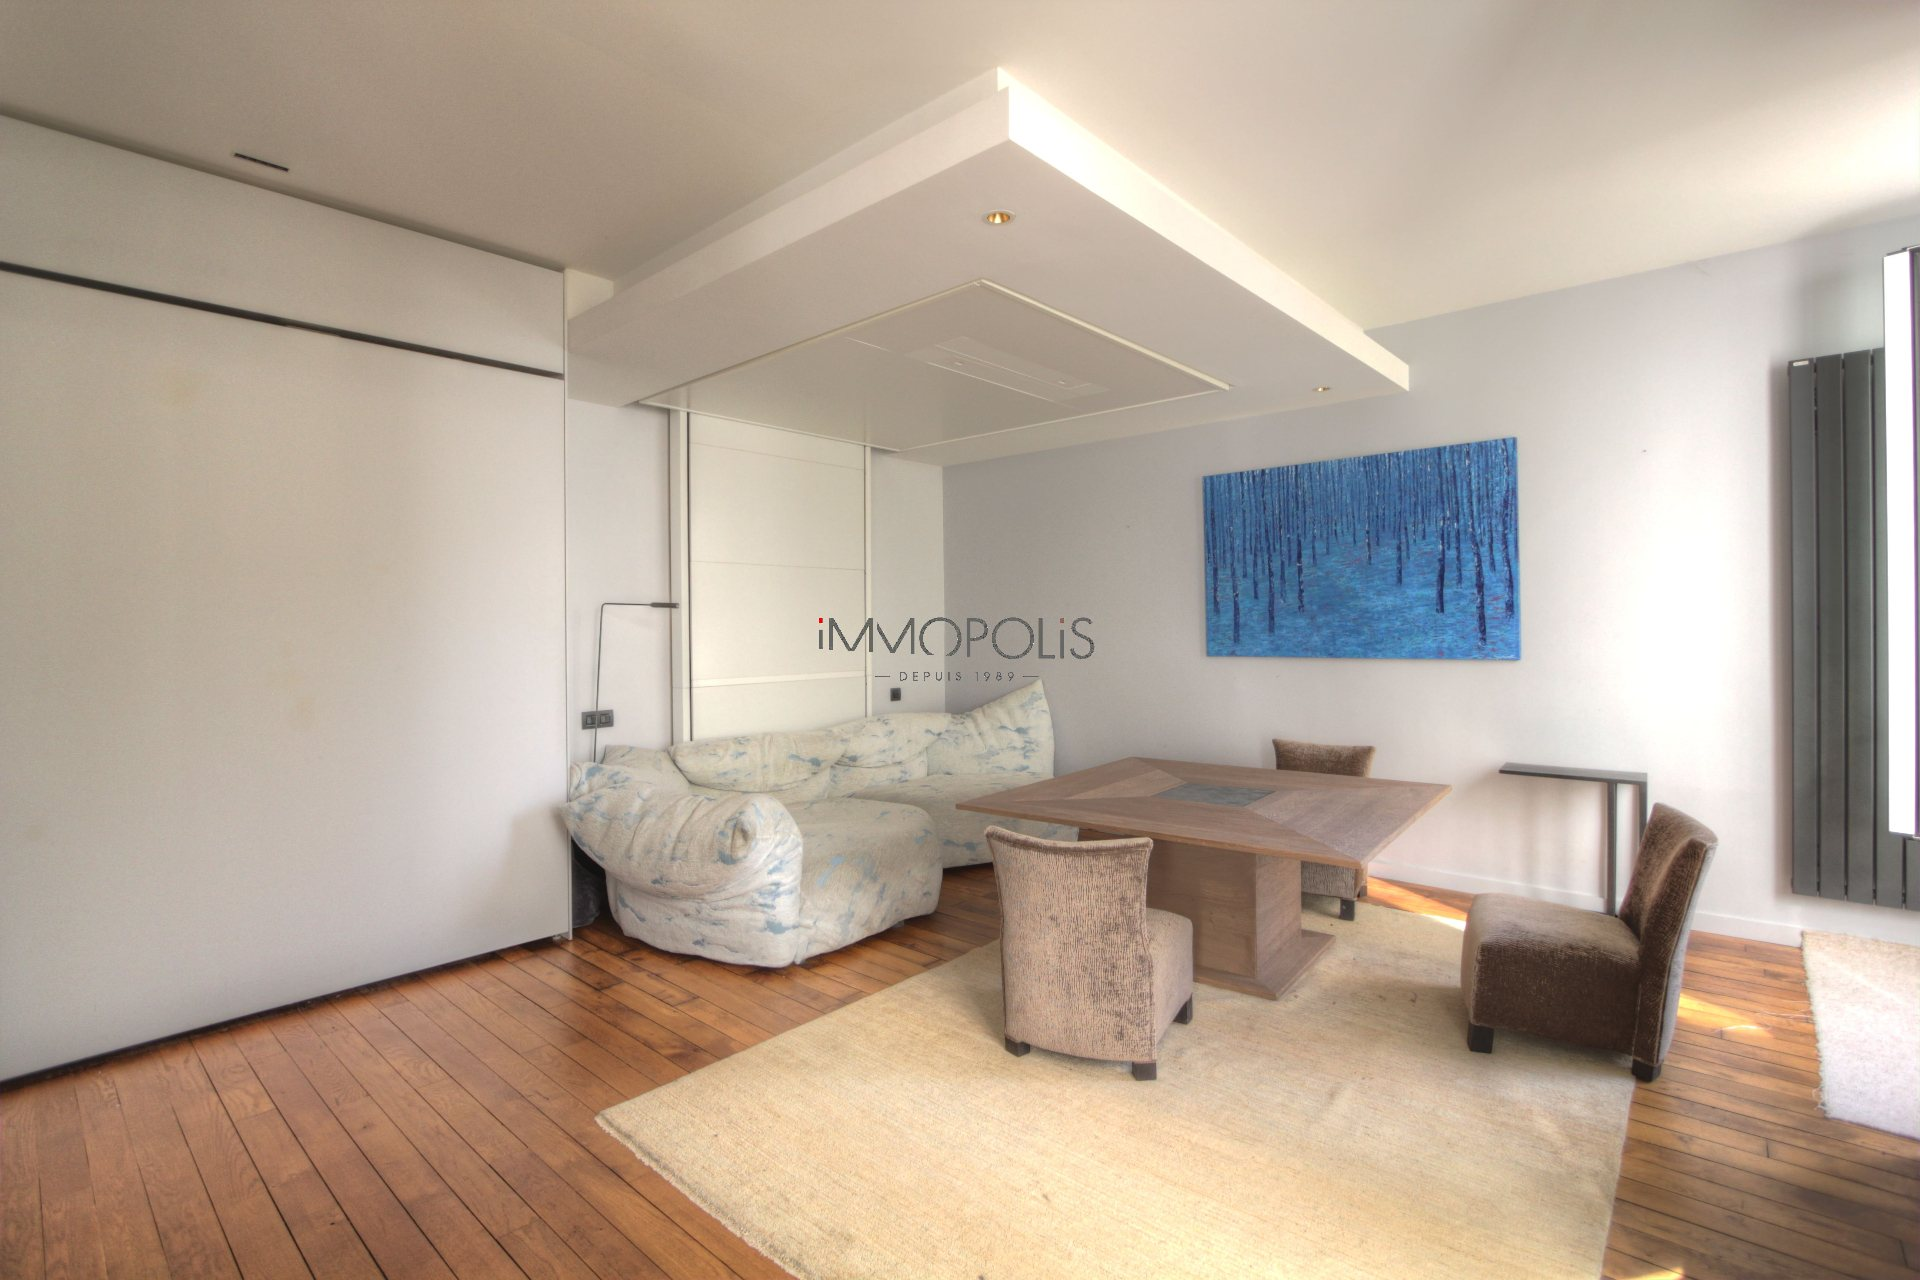 Exceptional in Montmartre (rue Gabrielle): refurbished open space, sumptuous appointments, with balcony and open view! 5